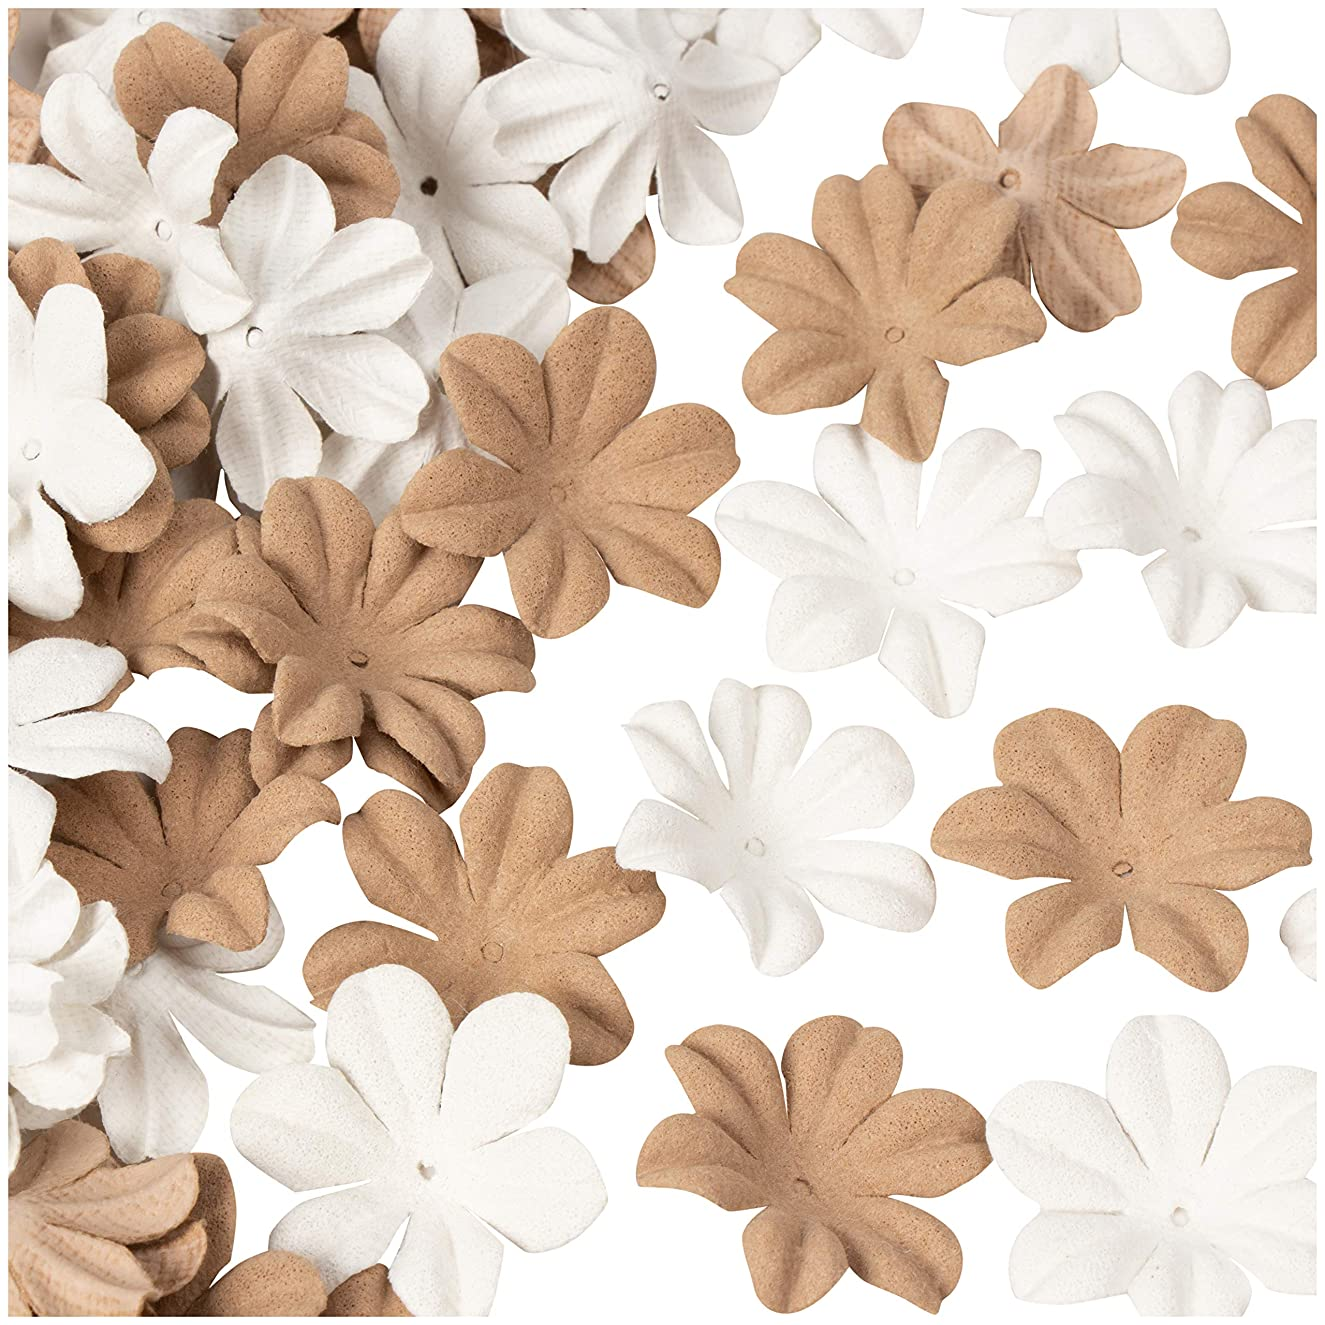 Decorative Craft Flowers - 100-Pack Flower Embellishment, Applique, Table Scatter, Artificial Flower Head for Scrapbooking, DIY, Wedding, Party, Home Decoration, White and Brown, 1 x 1 x 0.3 Inches